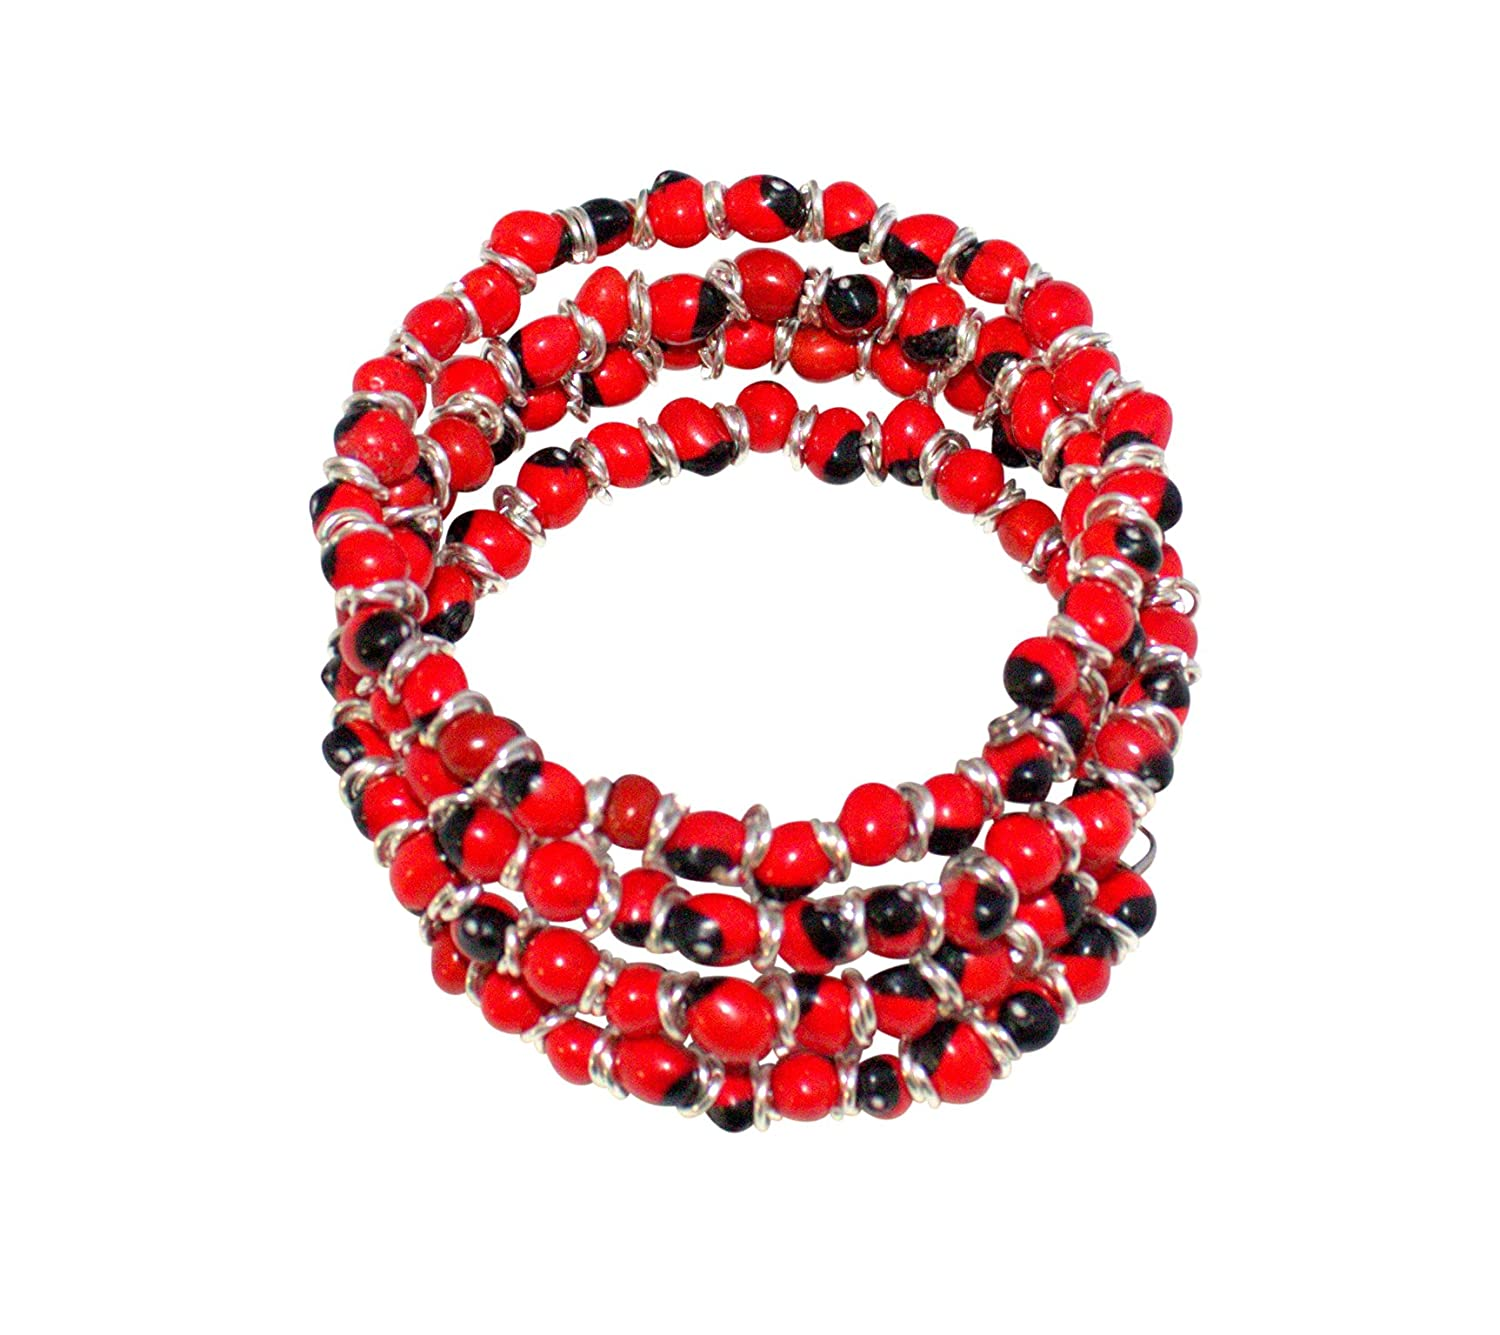 CDM product Peruvian Bracelet for Women - Huayruro Red Black Seed Wrap - Handmade Natural Jewelry by Evelyn Brooks big image